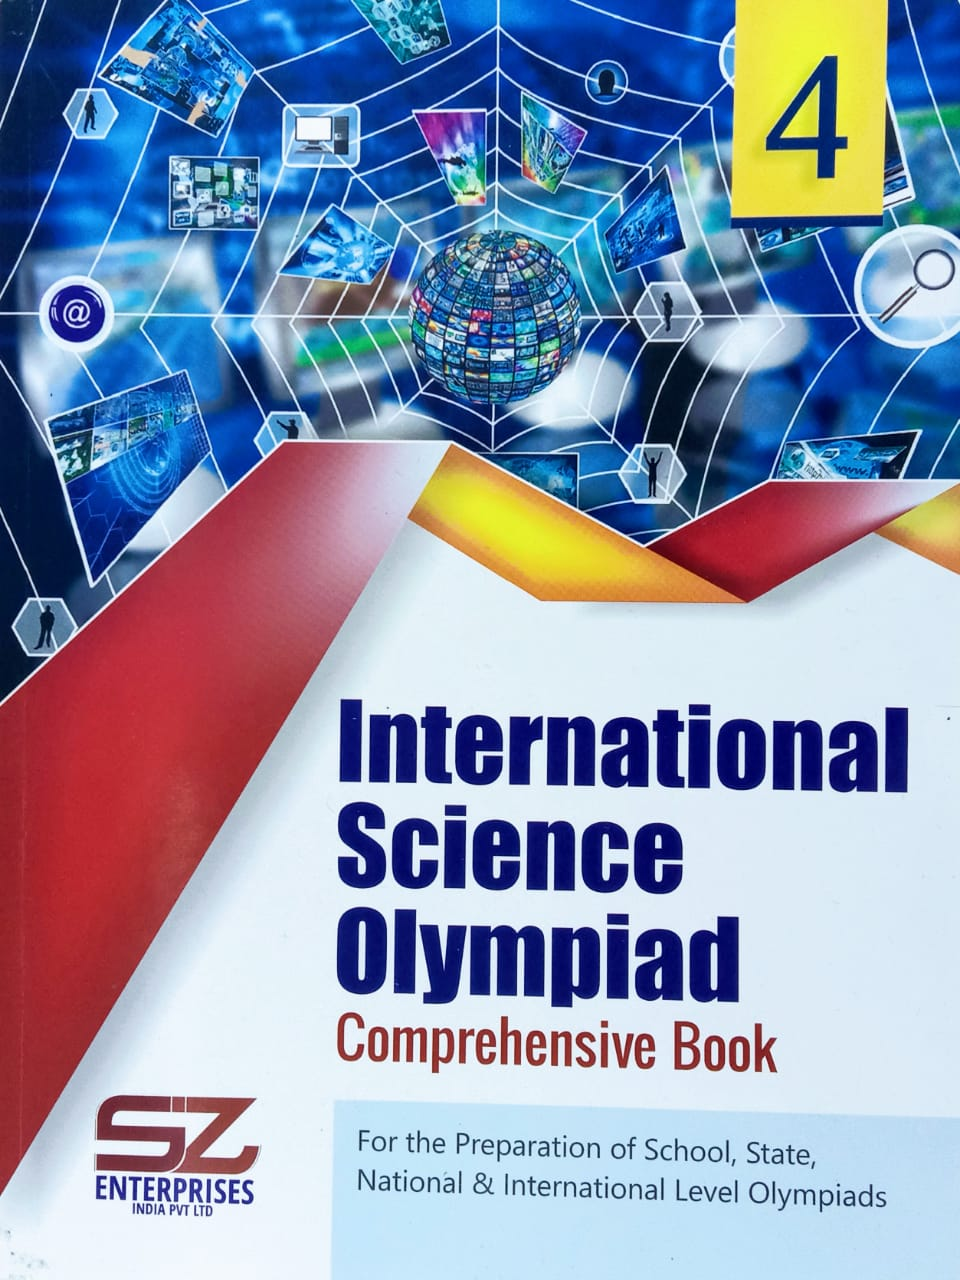 International Science Olympiad Comprehensive Book Class 4